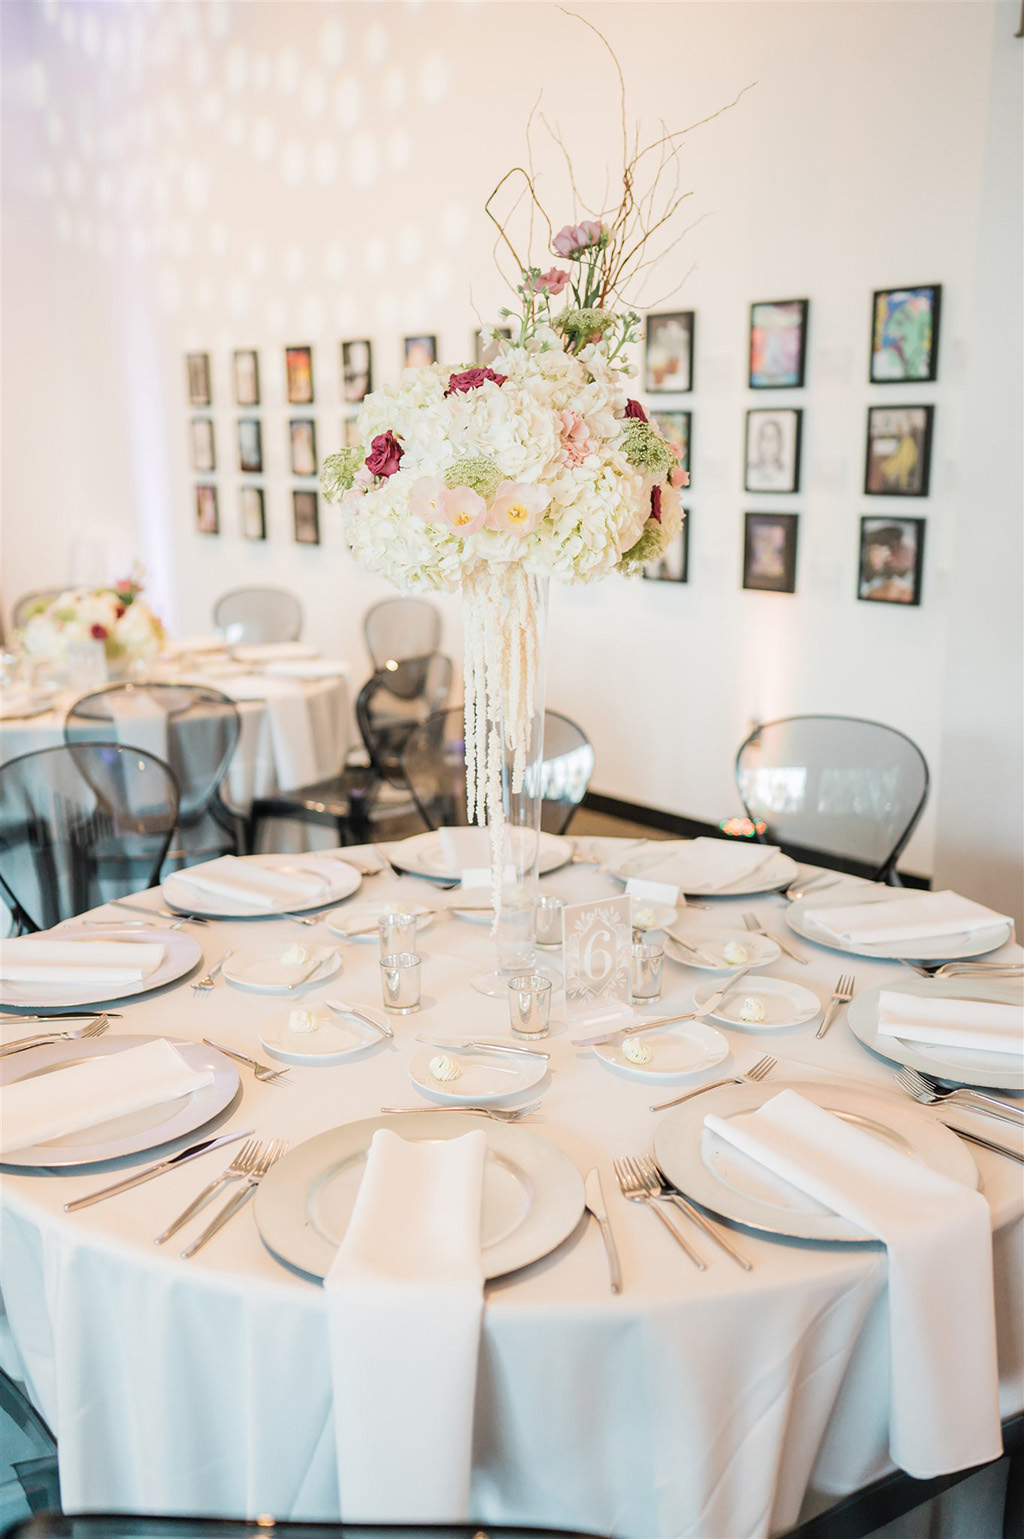 Downtown St. Pete Ivory and Blush Wedding Reception at Salvador Dali Museum | St. Pete Wedding Planner and Florist John Campbell Weddings | Catering by Olympia Catering